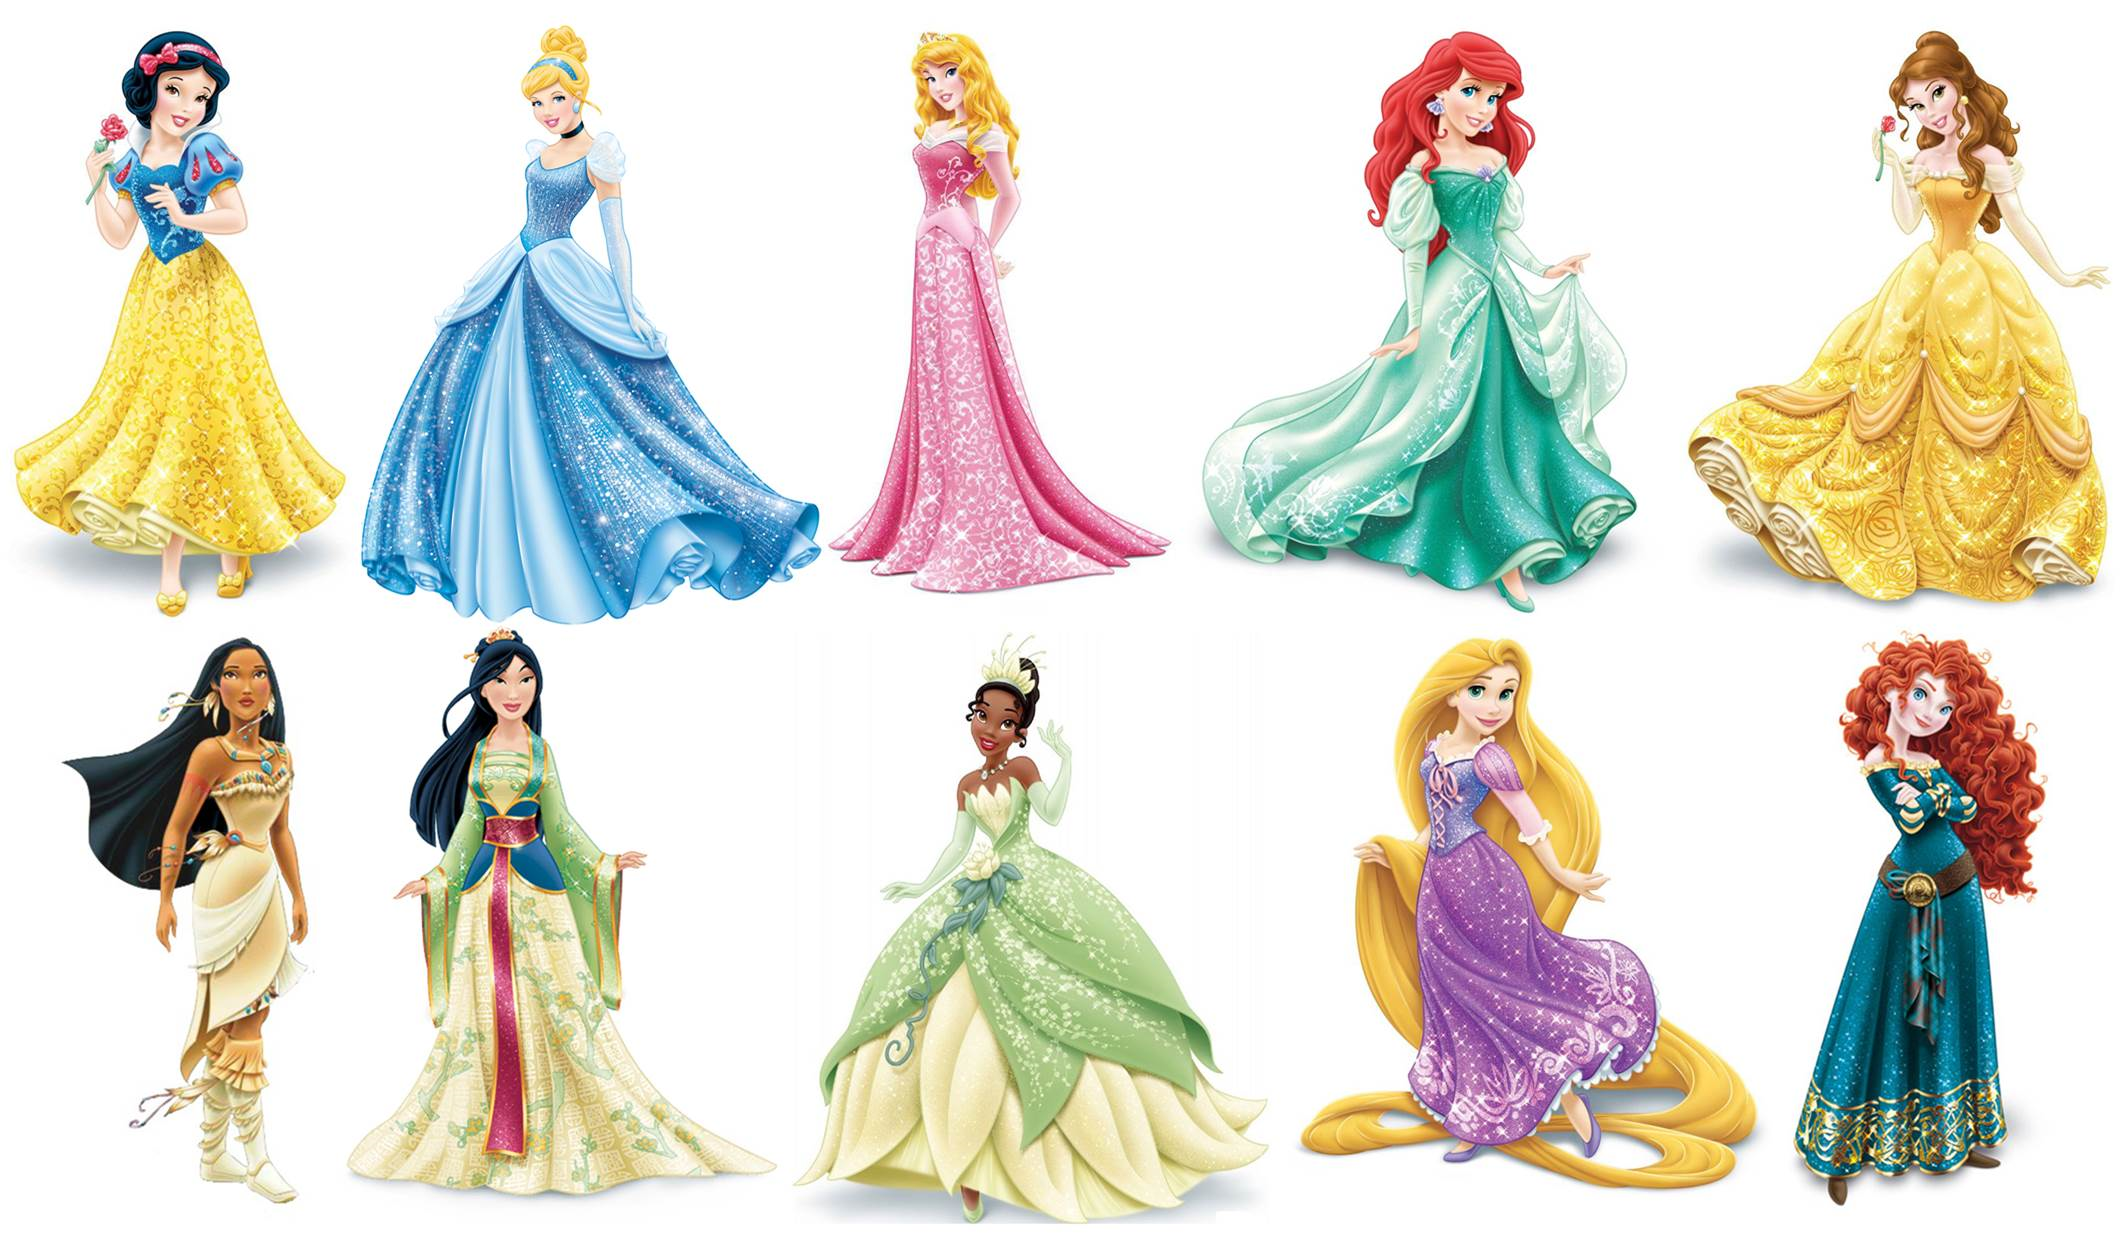 Disney princess pictures clipart banner transparent download Free Disney Princess Cliparts, Download Free Clip Art, Free Clip Art ... banner transparent download